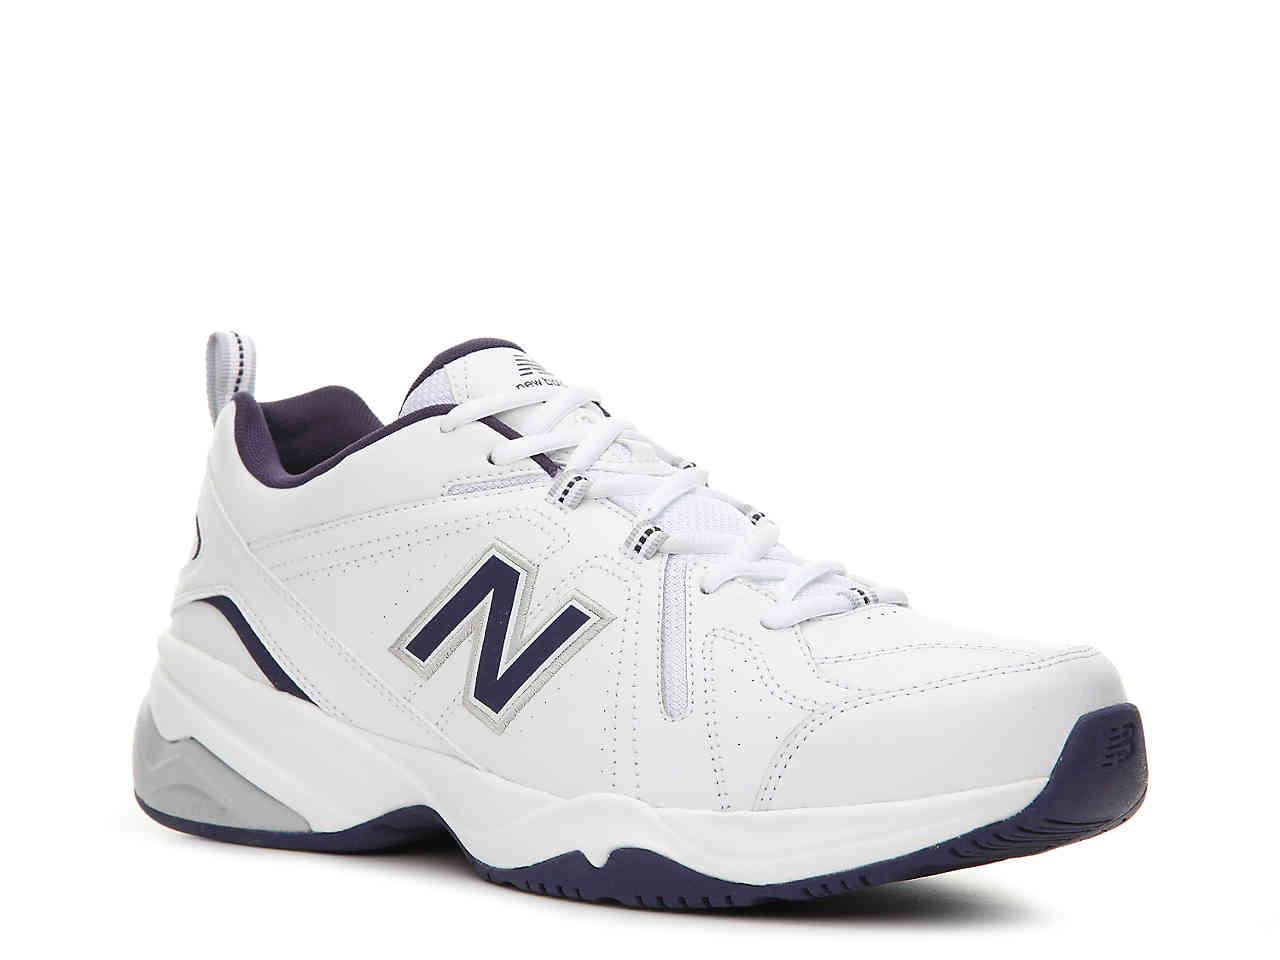 a77cc7b2035f Lyst - New Balance 608 V4 Training Shoe in White for Men